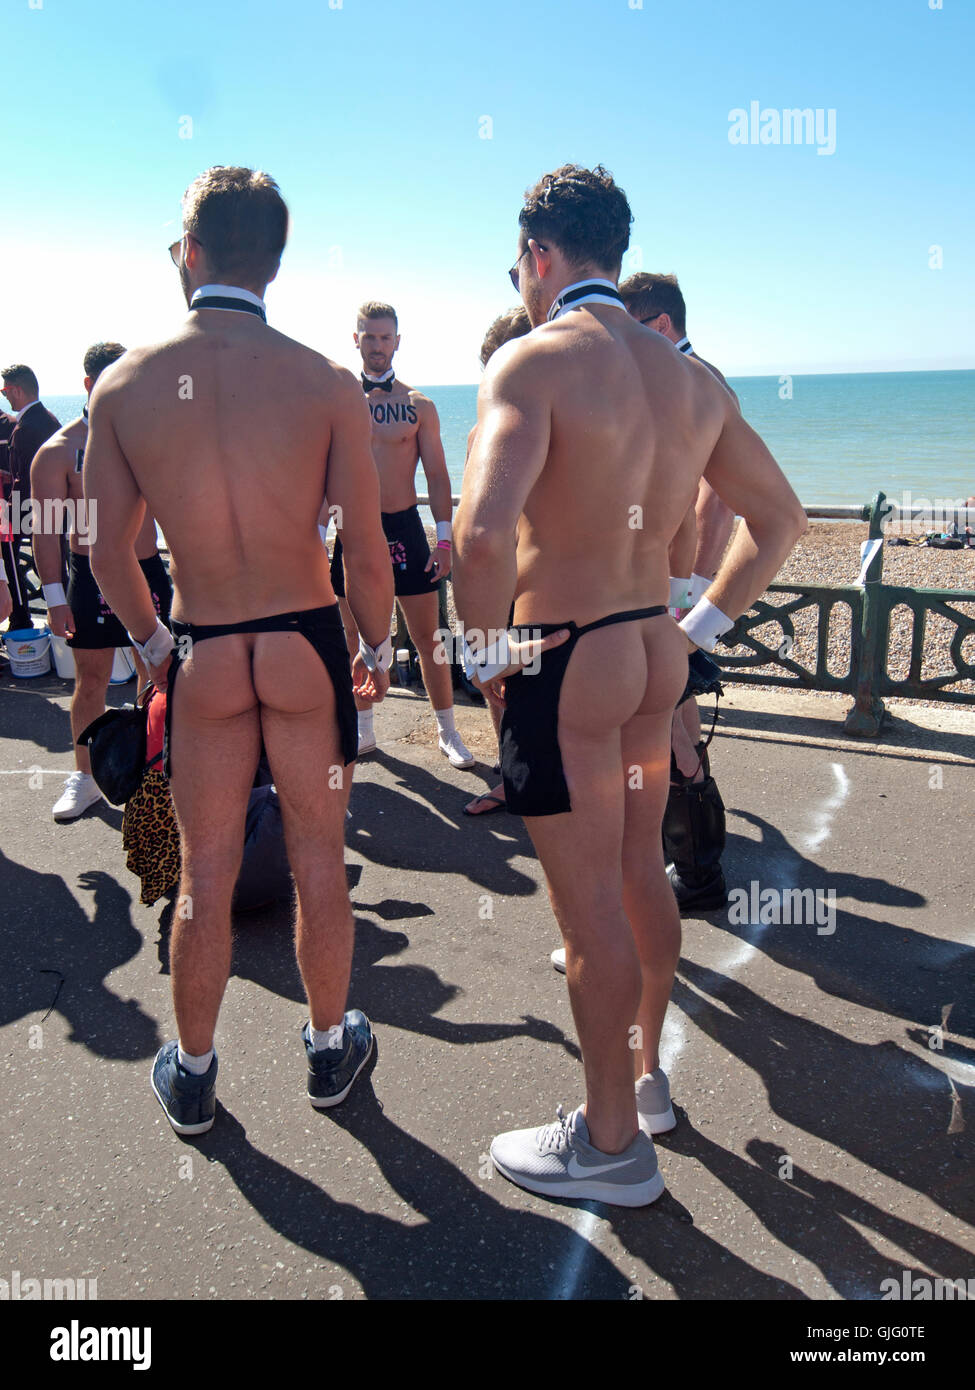 On the promenade at Hove the parade for Brighton Pride 2016 assembles - Stock Image